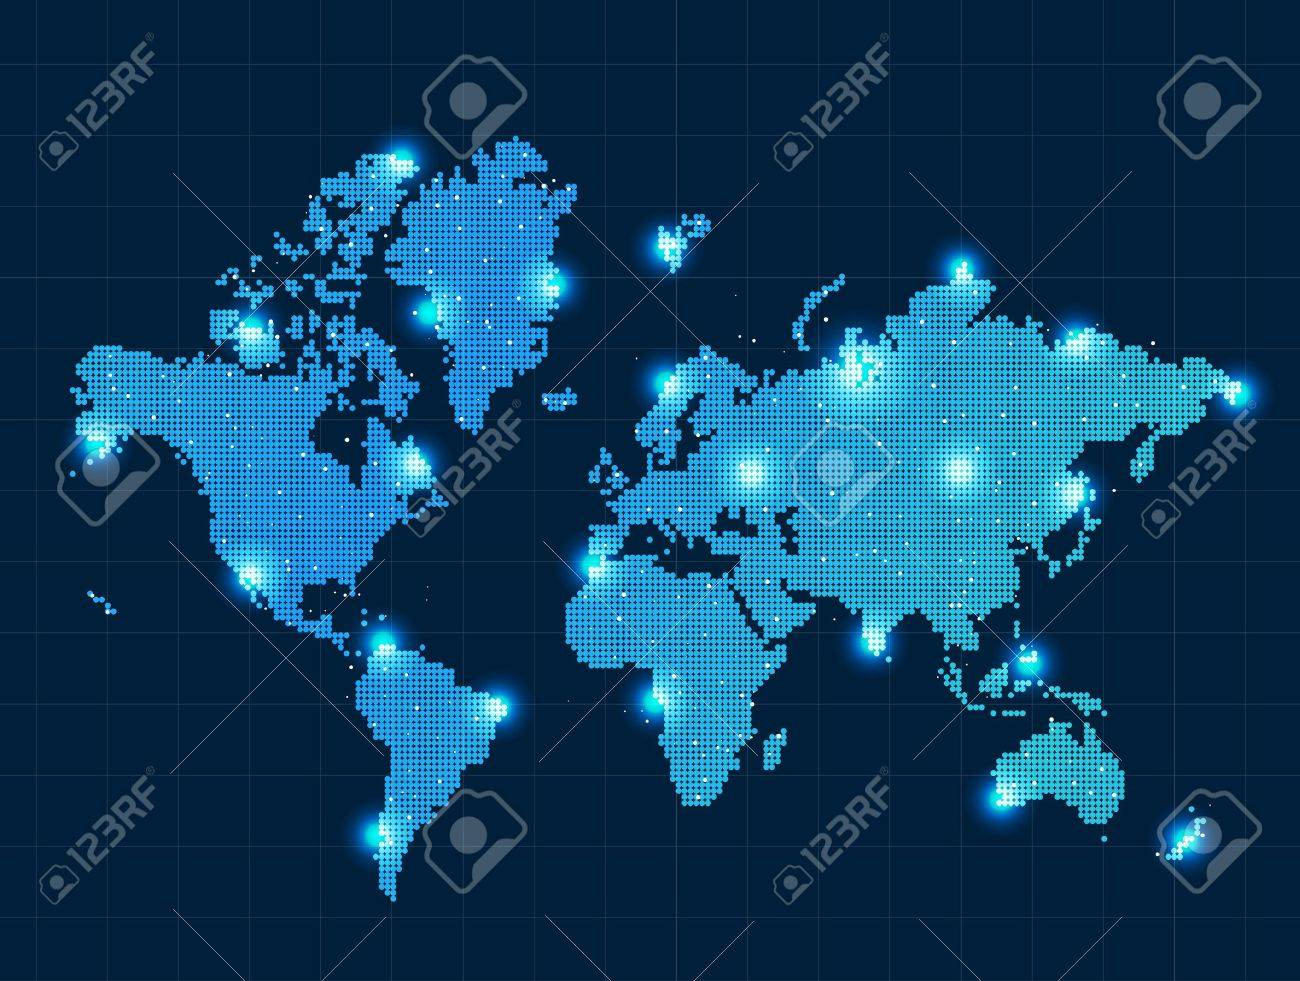 Pixel world map with spot lights royalty free cliparts vectors and pixel world map with spot lights stock vector 18552377 gumiabroncs Images